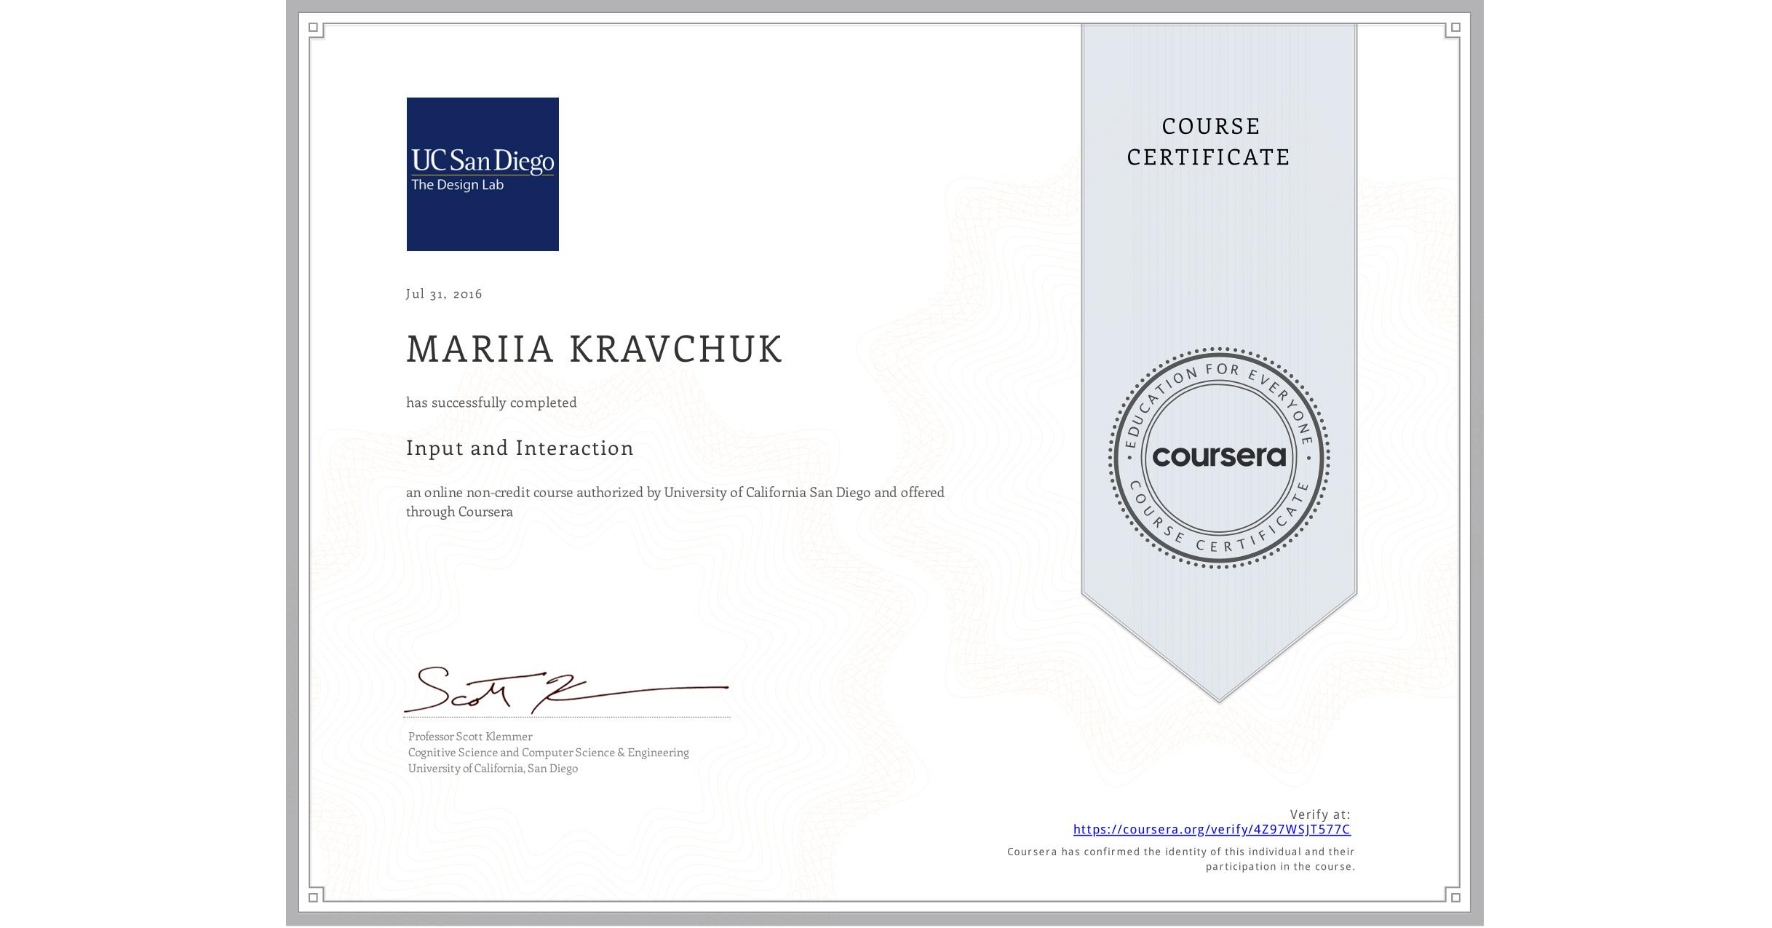 View certificate for MARIIA KRAVCHUK, Input and Interaction, an online non-credit course authorized by University of California San Diego and offered through Coursera